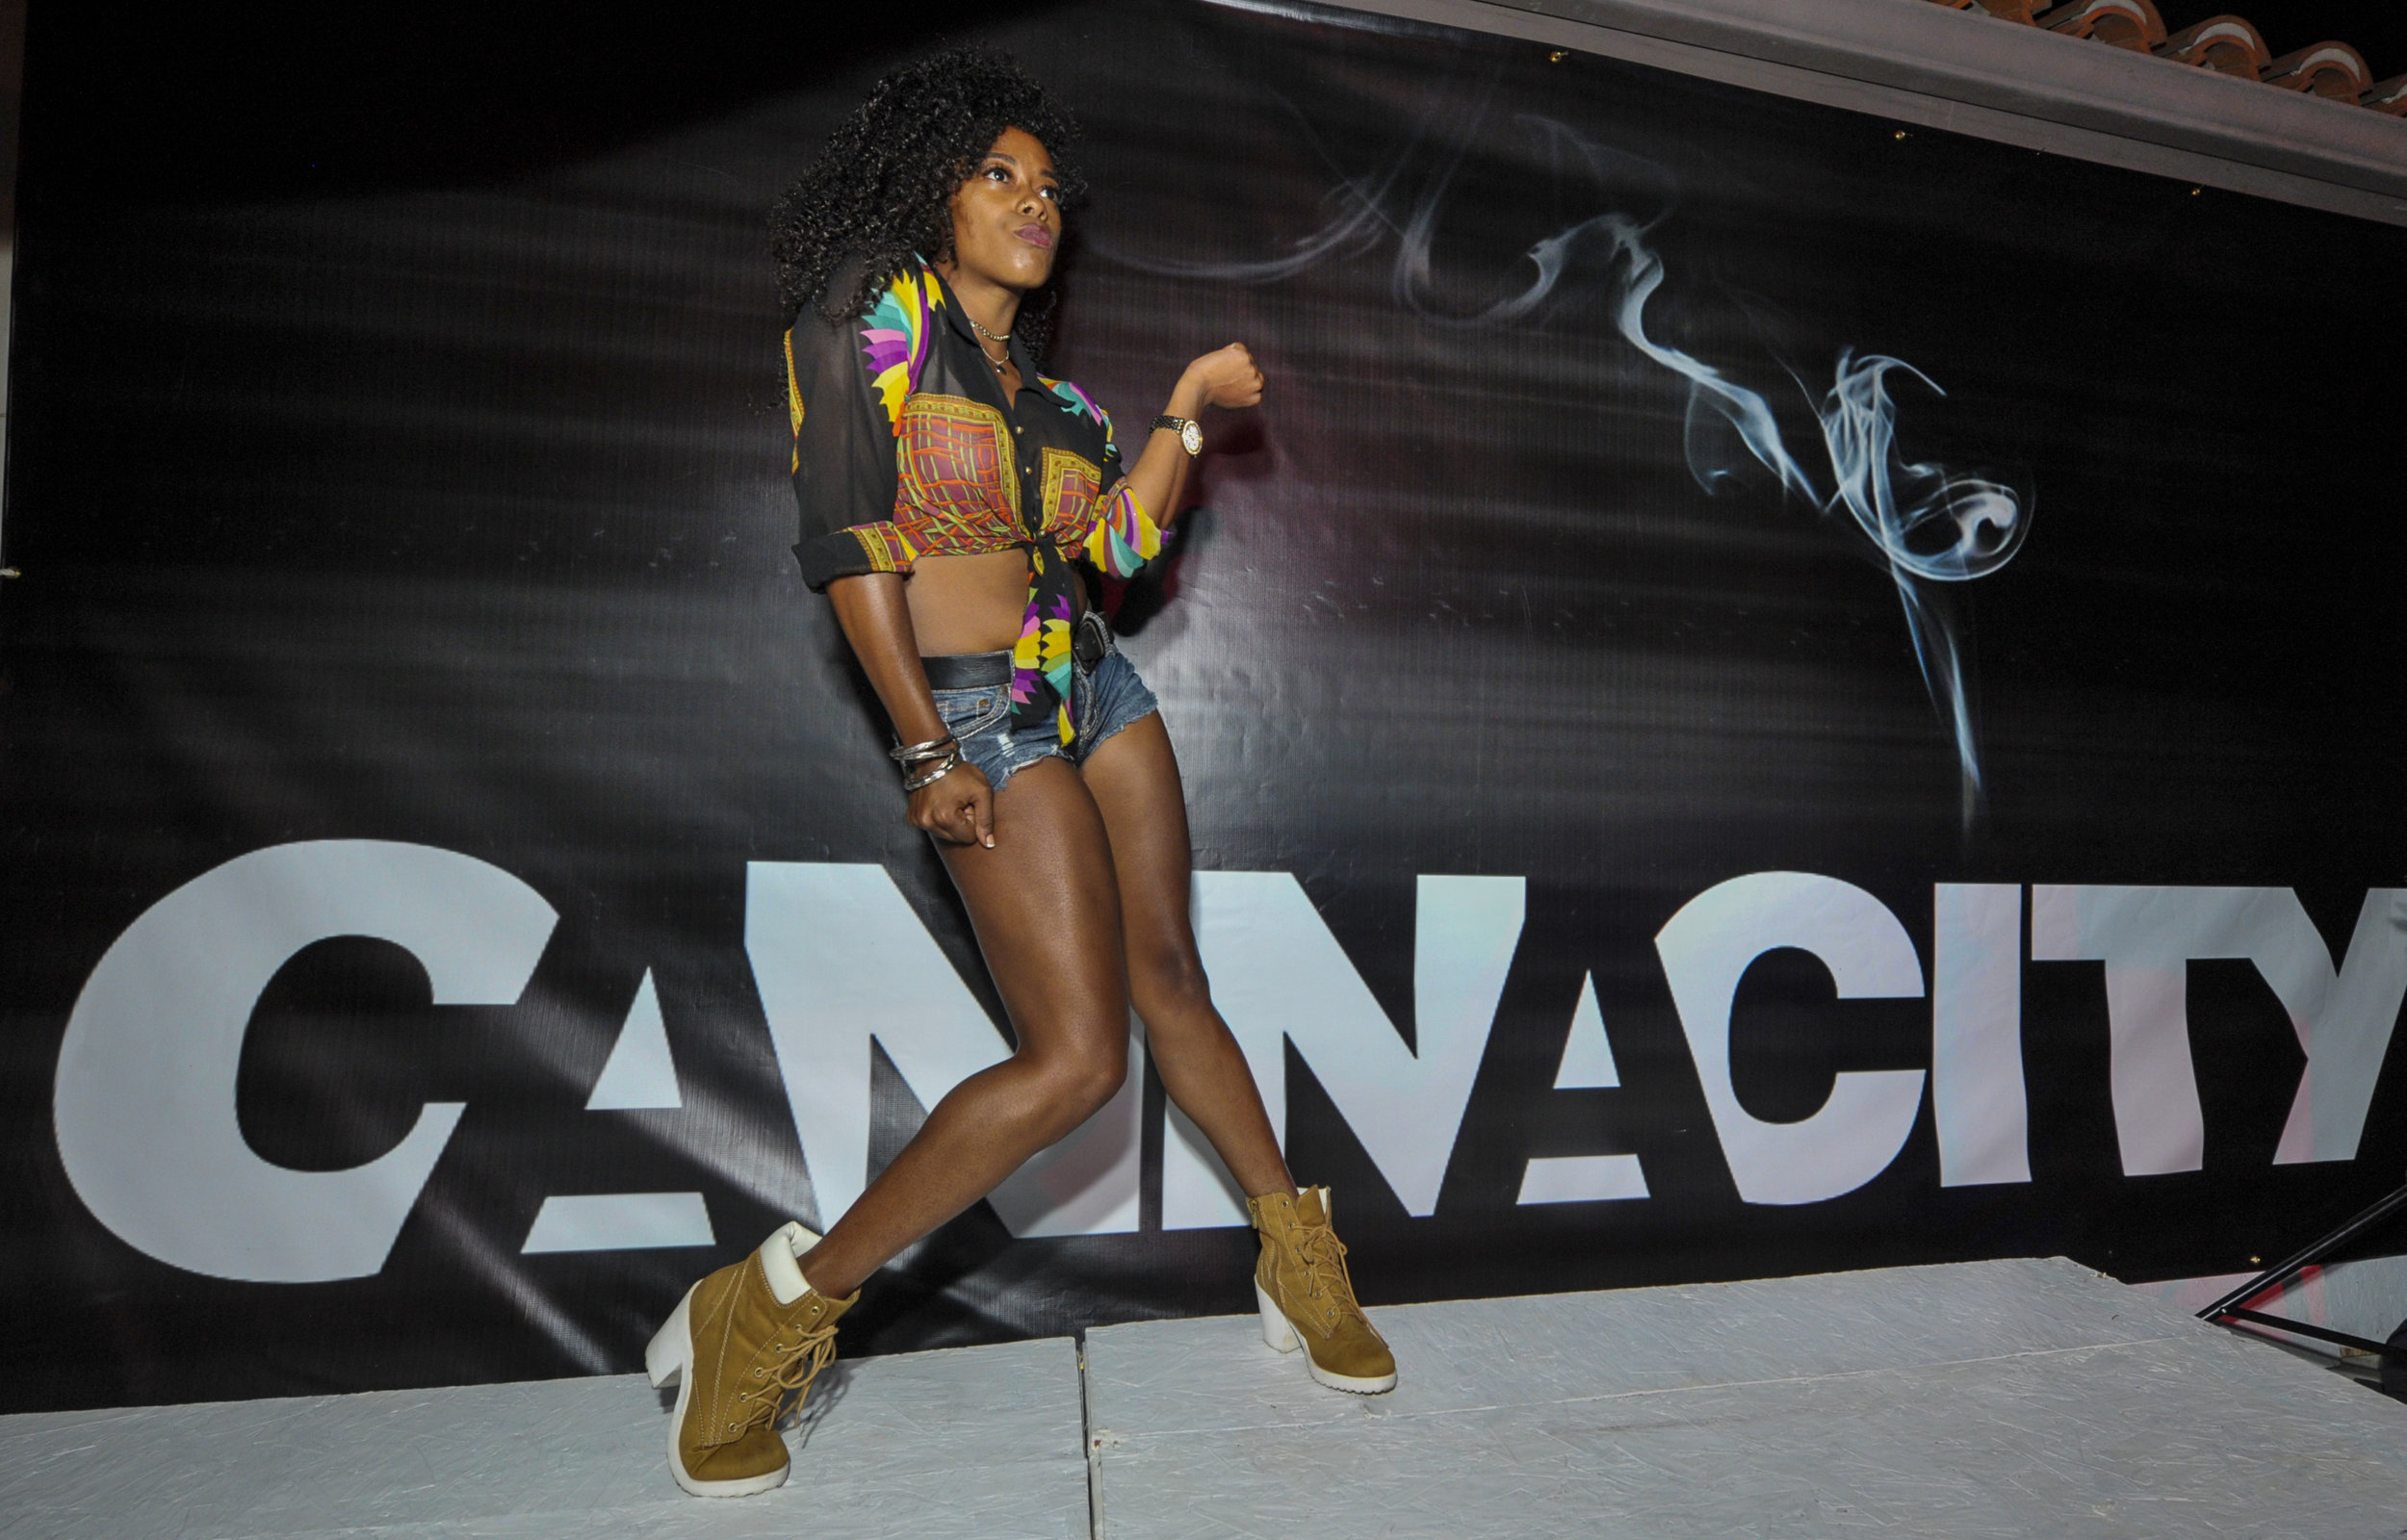 Delila Outlaw at Welcome To Cannacity